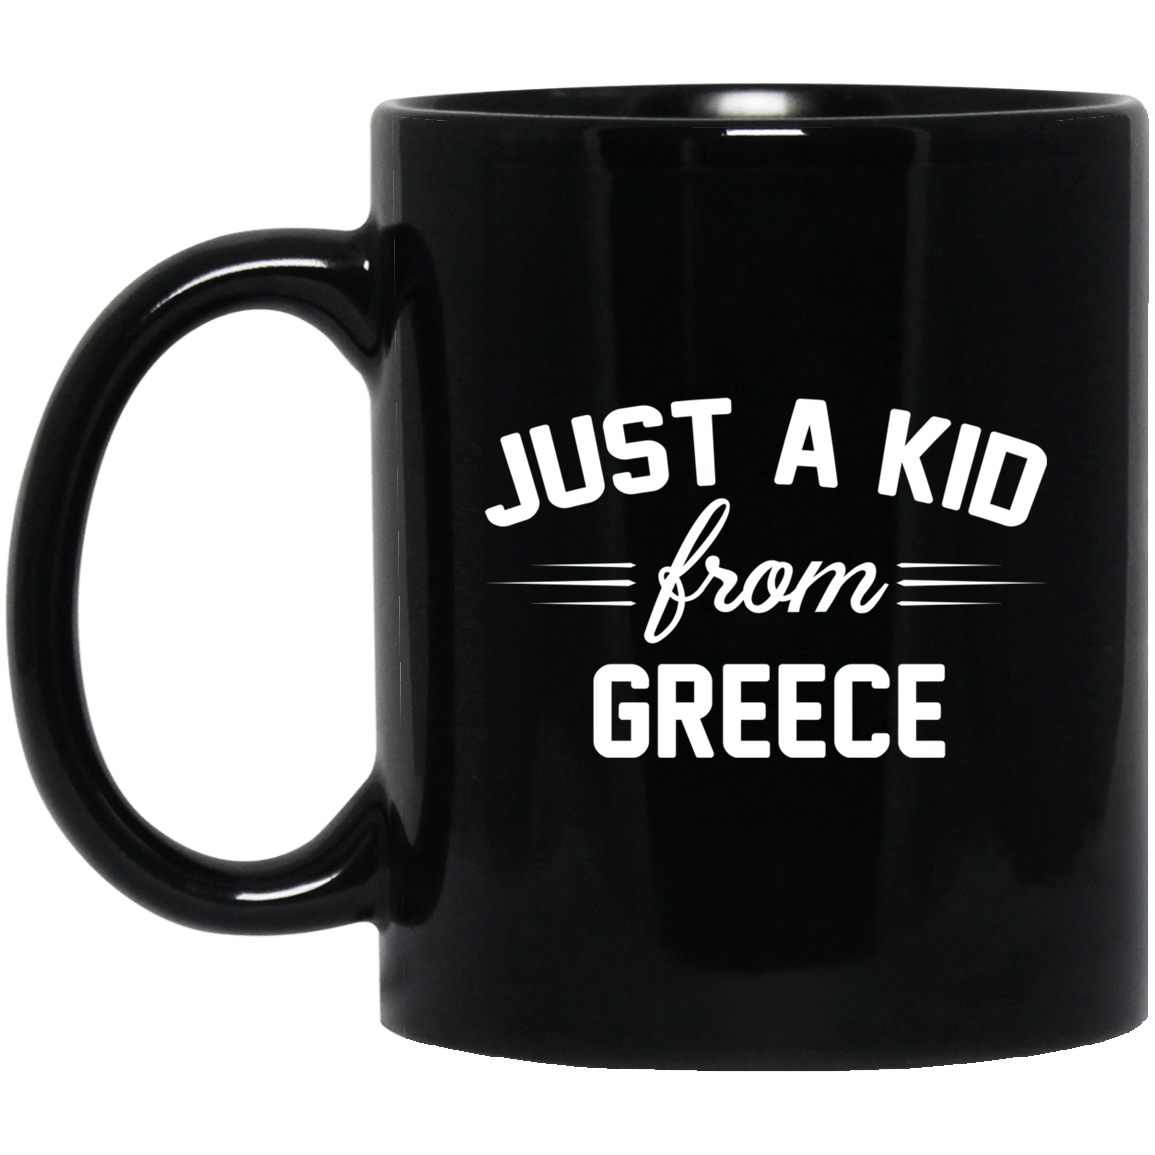 Just A Kid Store | Greece Mug 1065-10181-72111213-49307 - Tee Ript